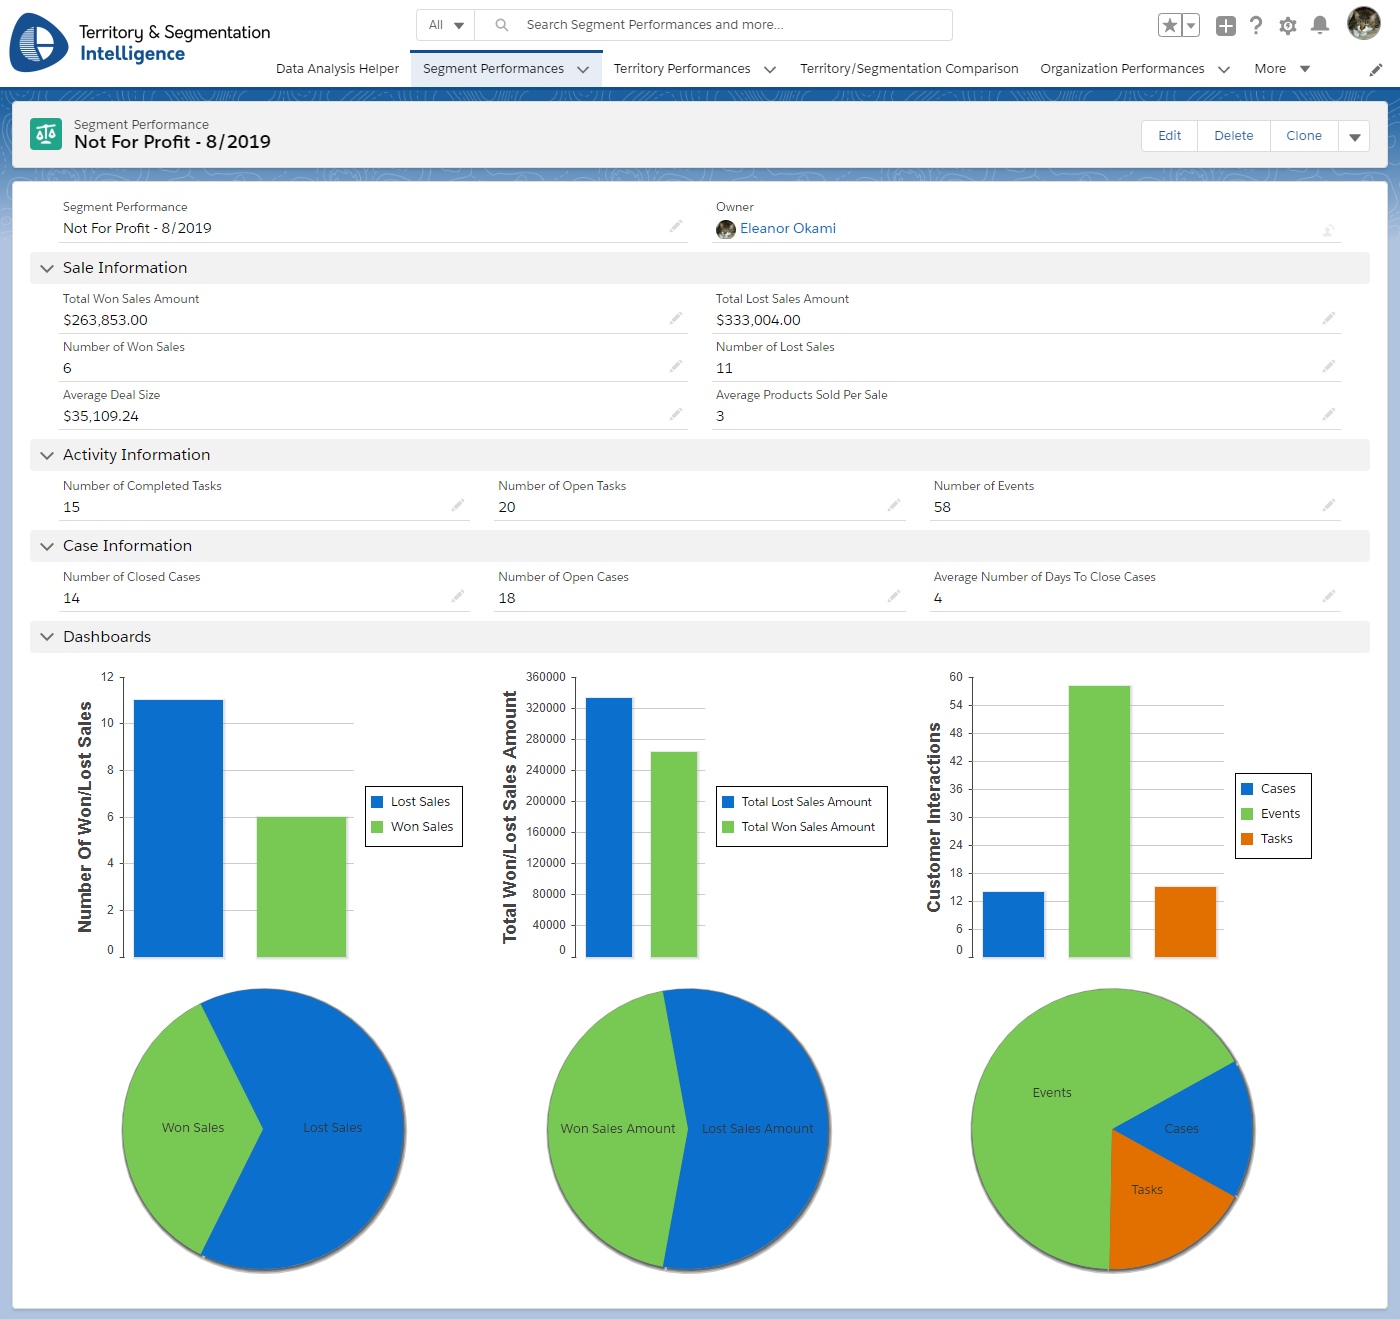 Total Sales Revenue Dashboard by Business Segment